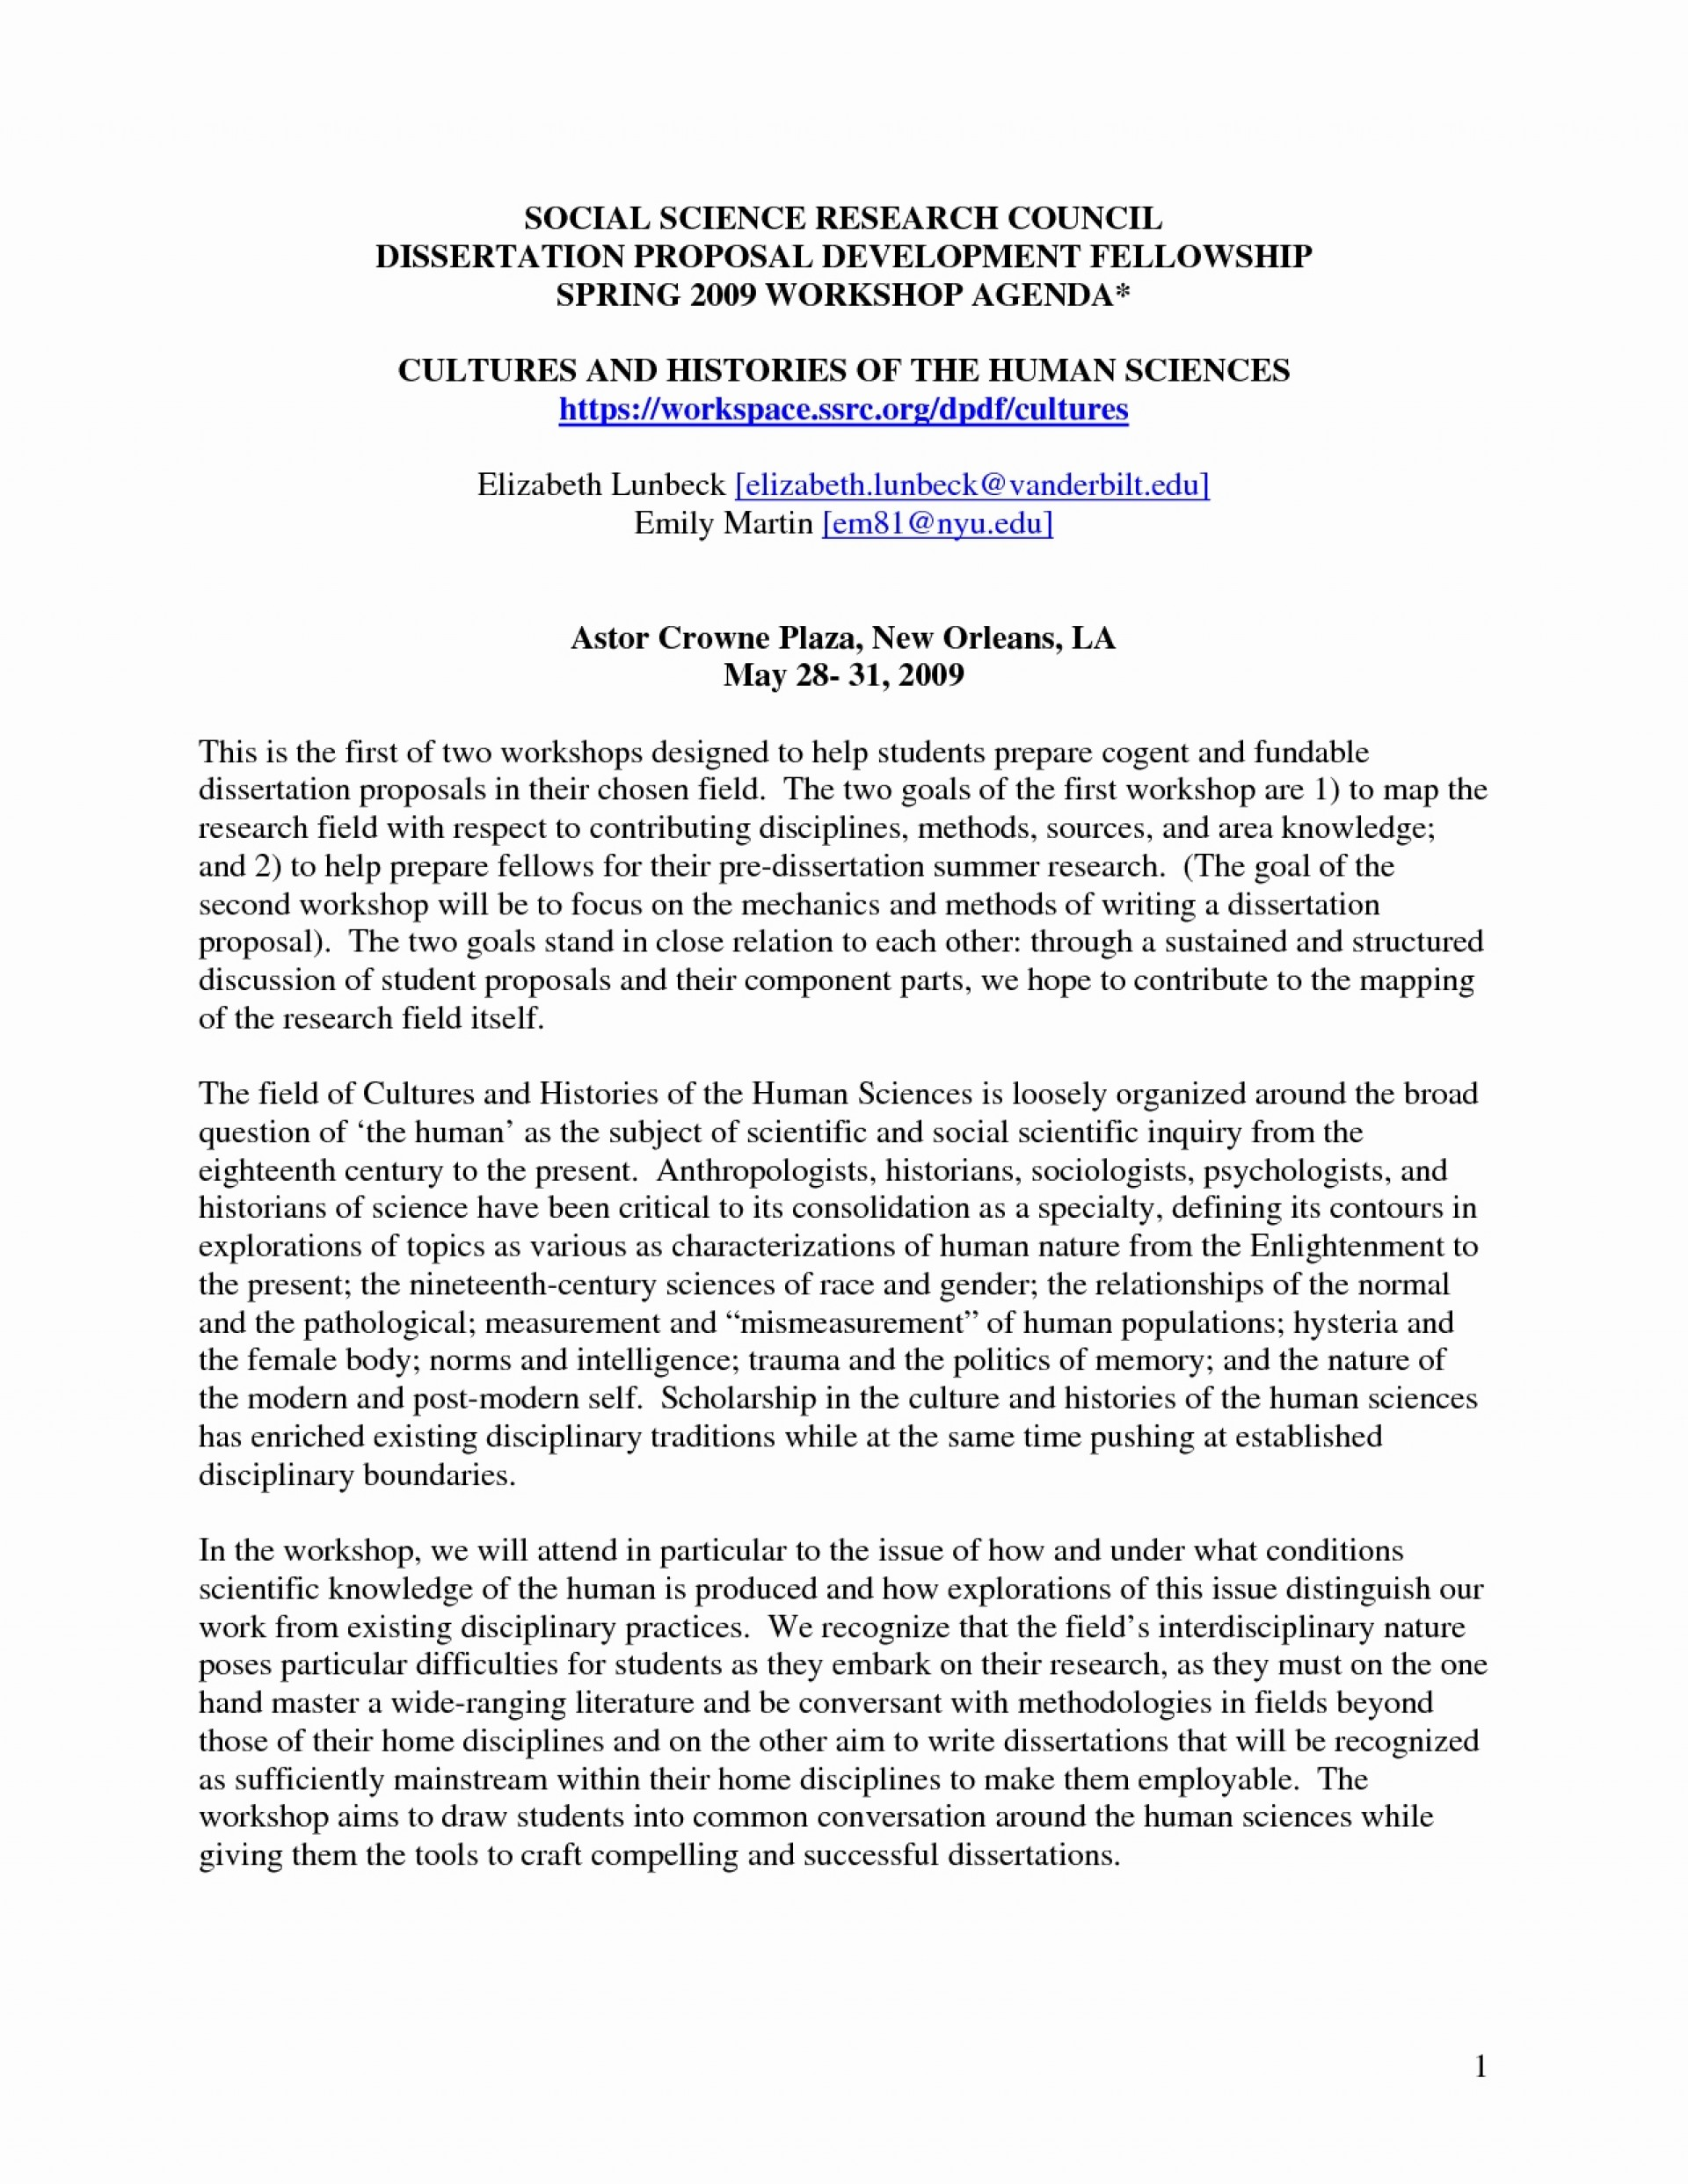 019 Research Proposal Example Pdf New Help Writing Engineering Dissertation Of Beautiful Paper Sample 1920